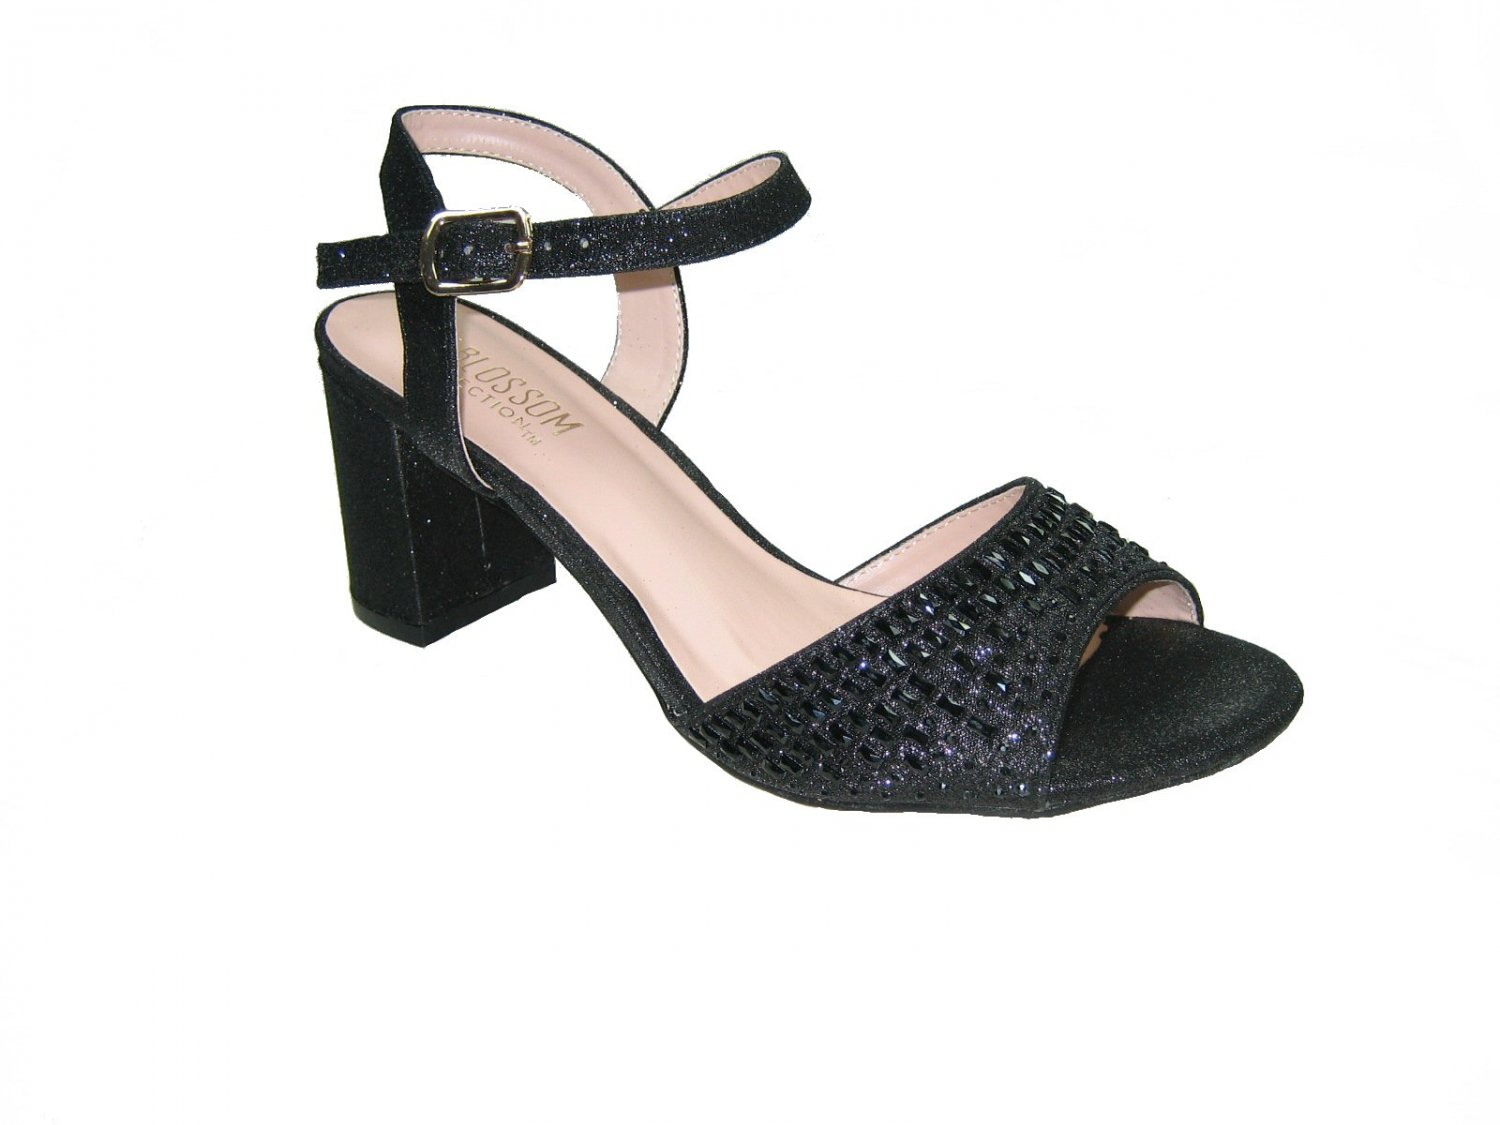 Blossom amber-9 strappy black sparkle shimmer 3 inch block heel party sandals size 7